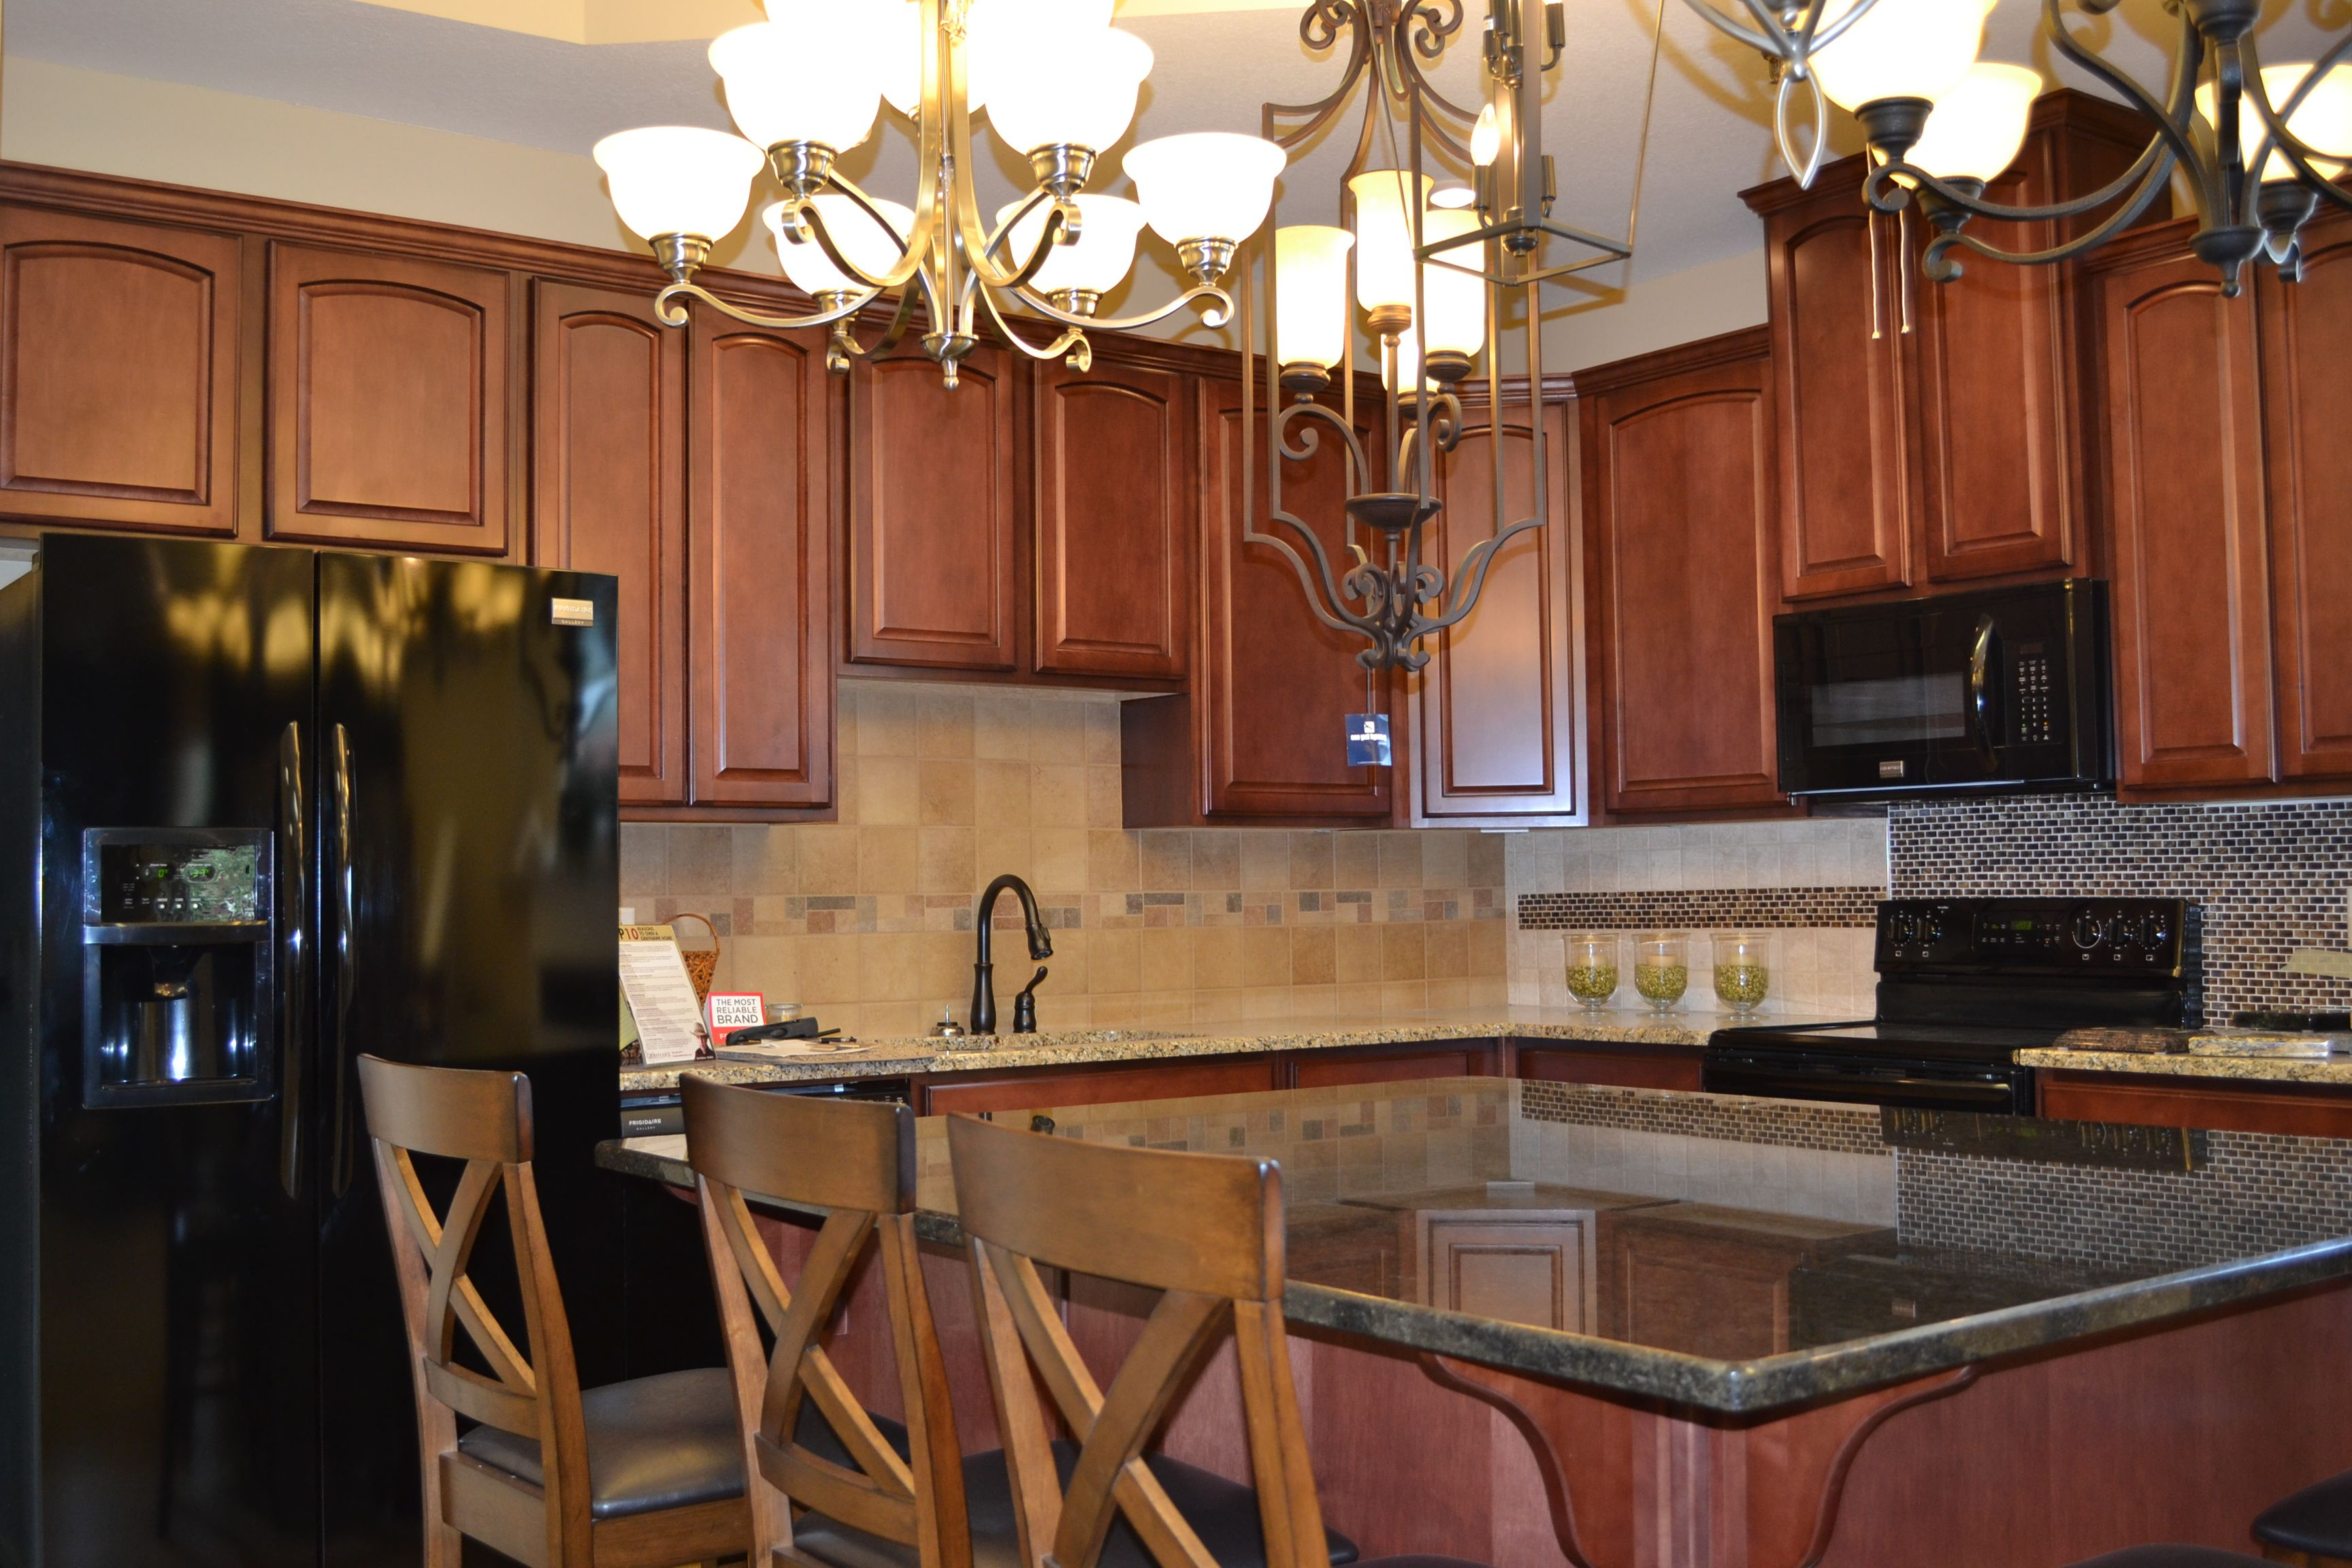 Come And Visit Our New Showroom At 2301 Airport Thruway In Columbus Ga Www Grayhawkhomesinc Com Home Kitchens Kitchen Design Kitchen